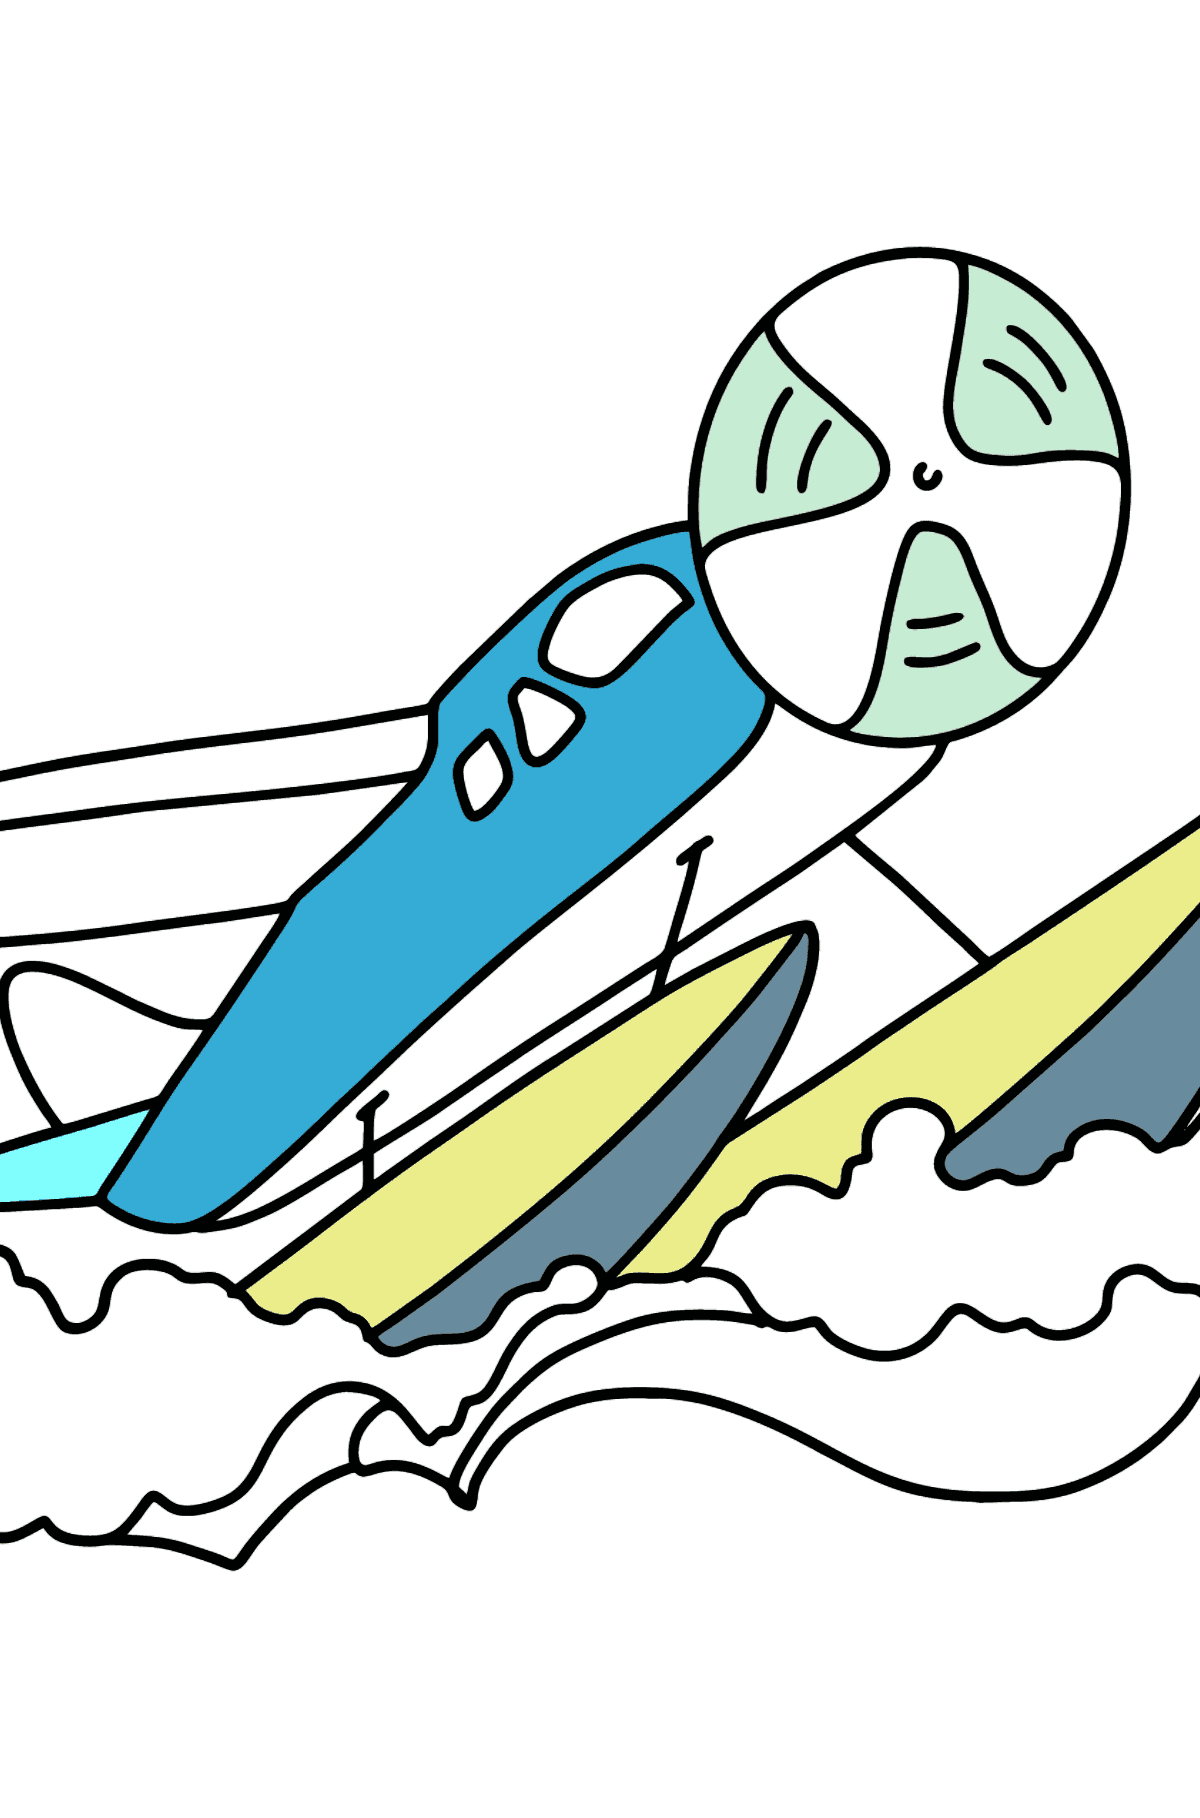 Amphibious Airplane coloring page - Coloring Pages for Kids